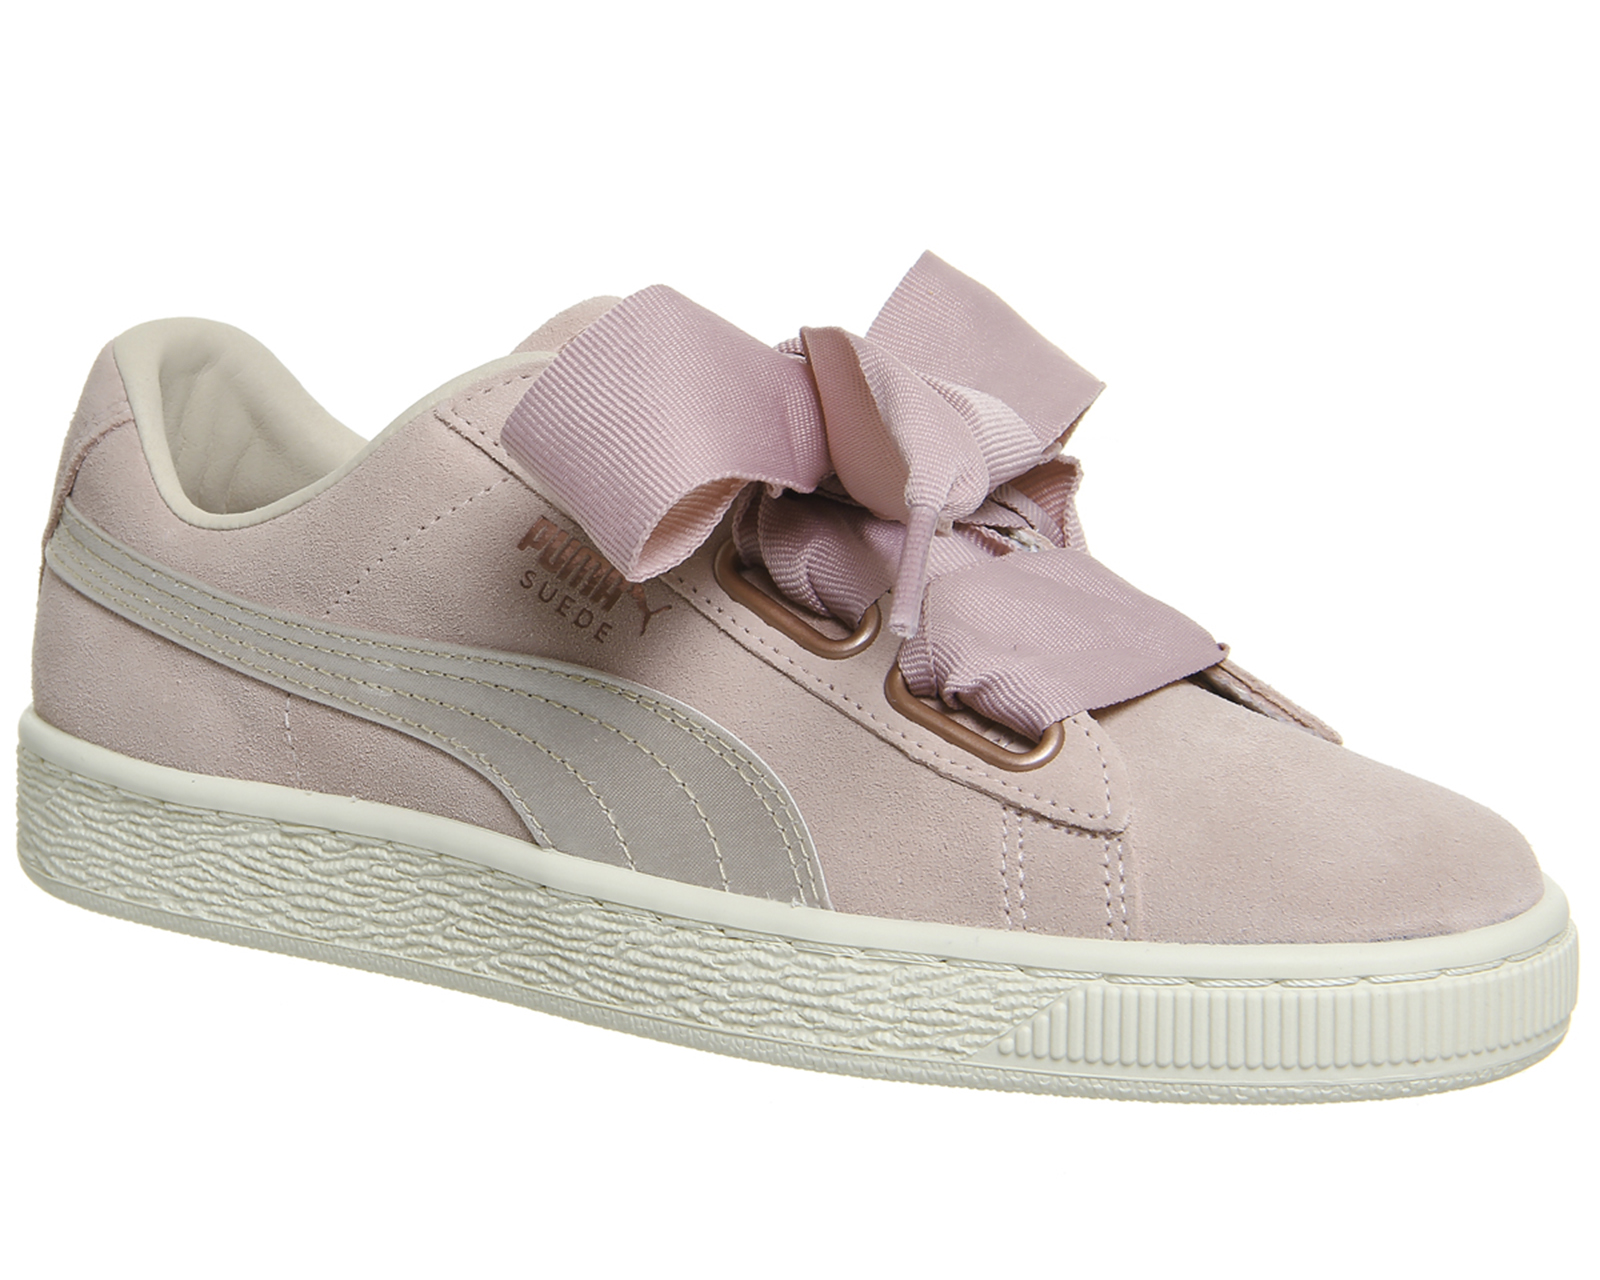 009d70602f8 Sentinel Womens Puma Suede Heart Trainers Silver Pink Tint Rose Gold Trainers  Shoes